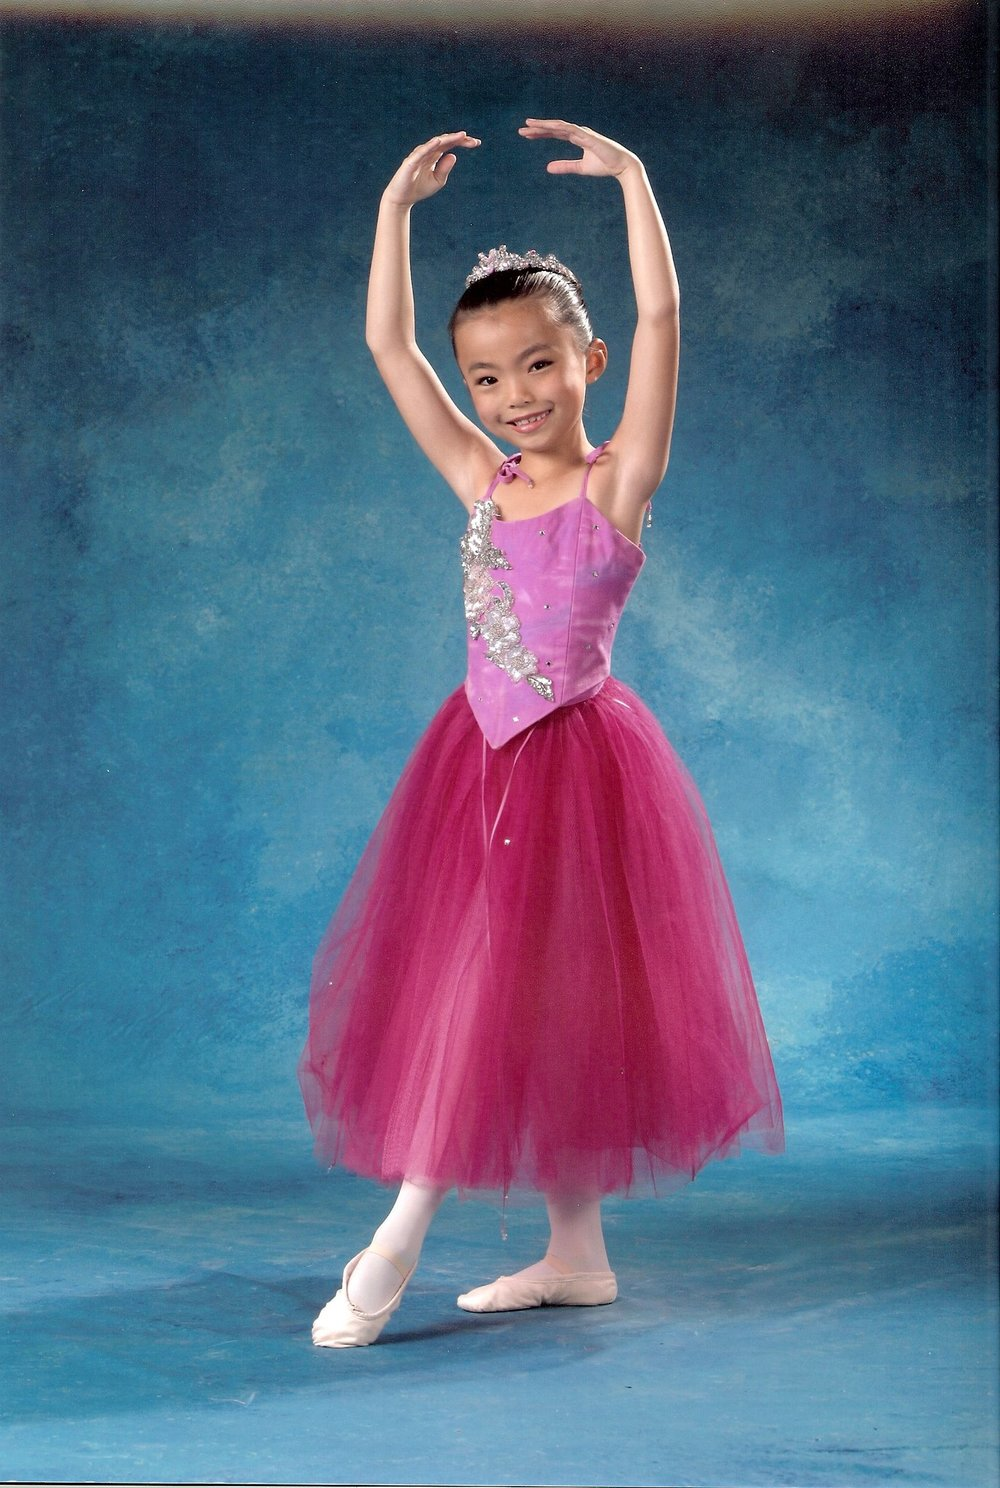 Aria the Ballerina